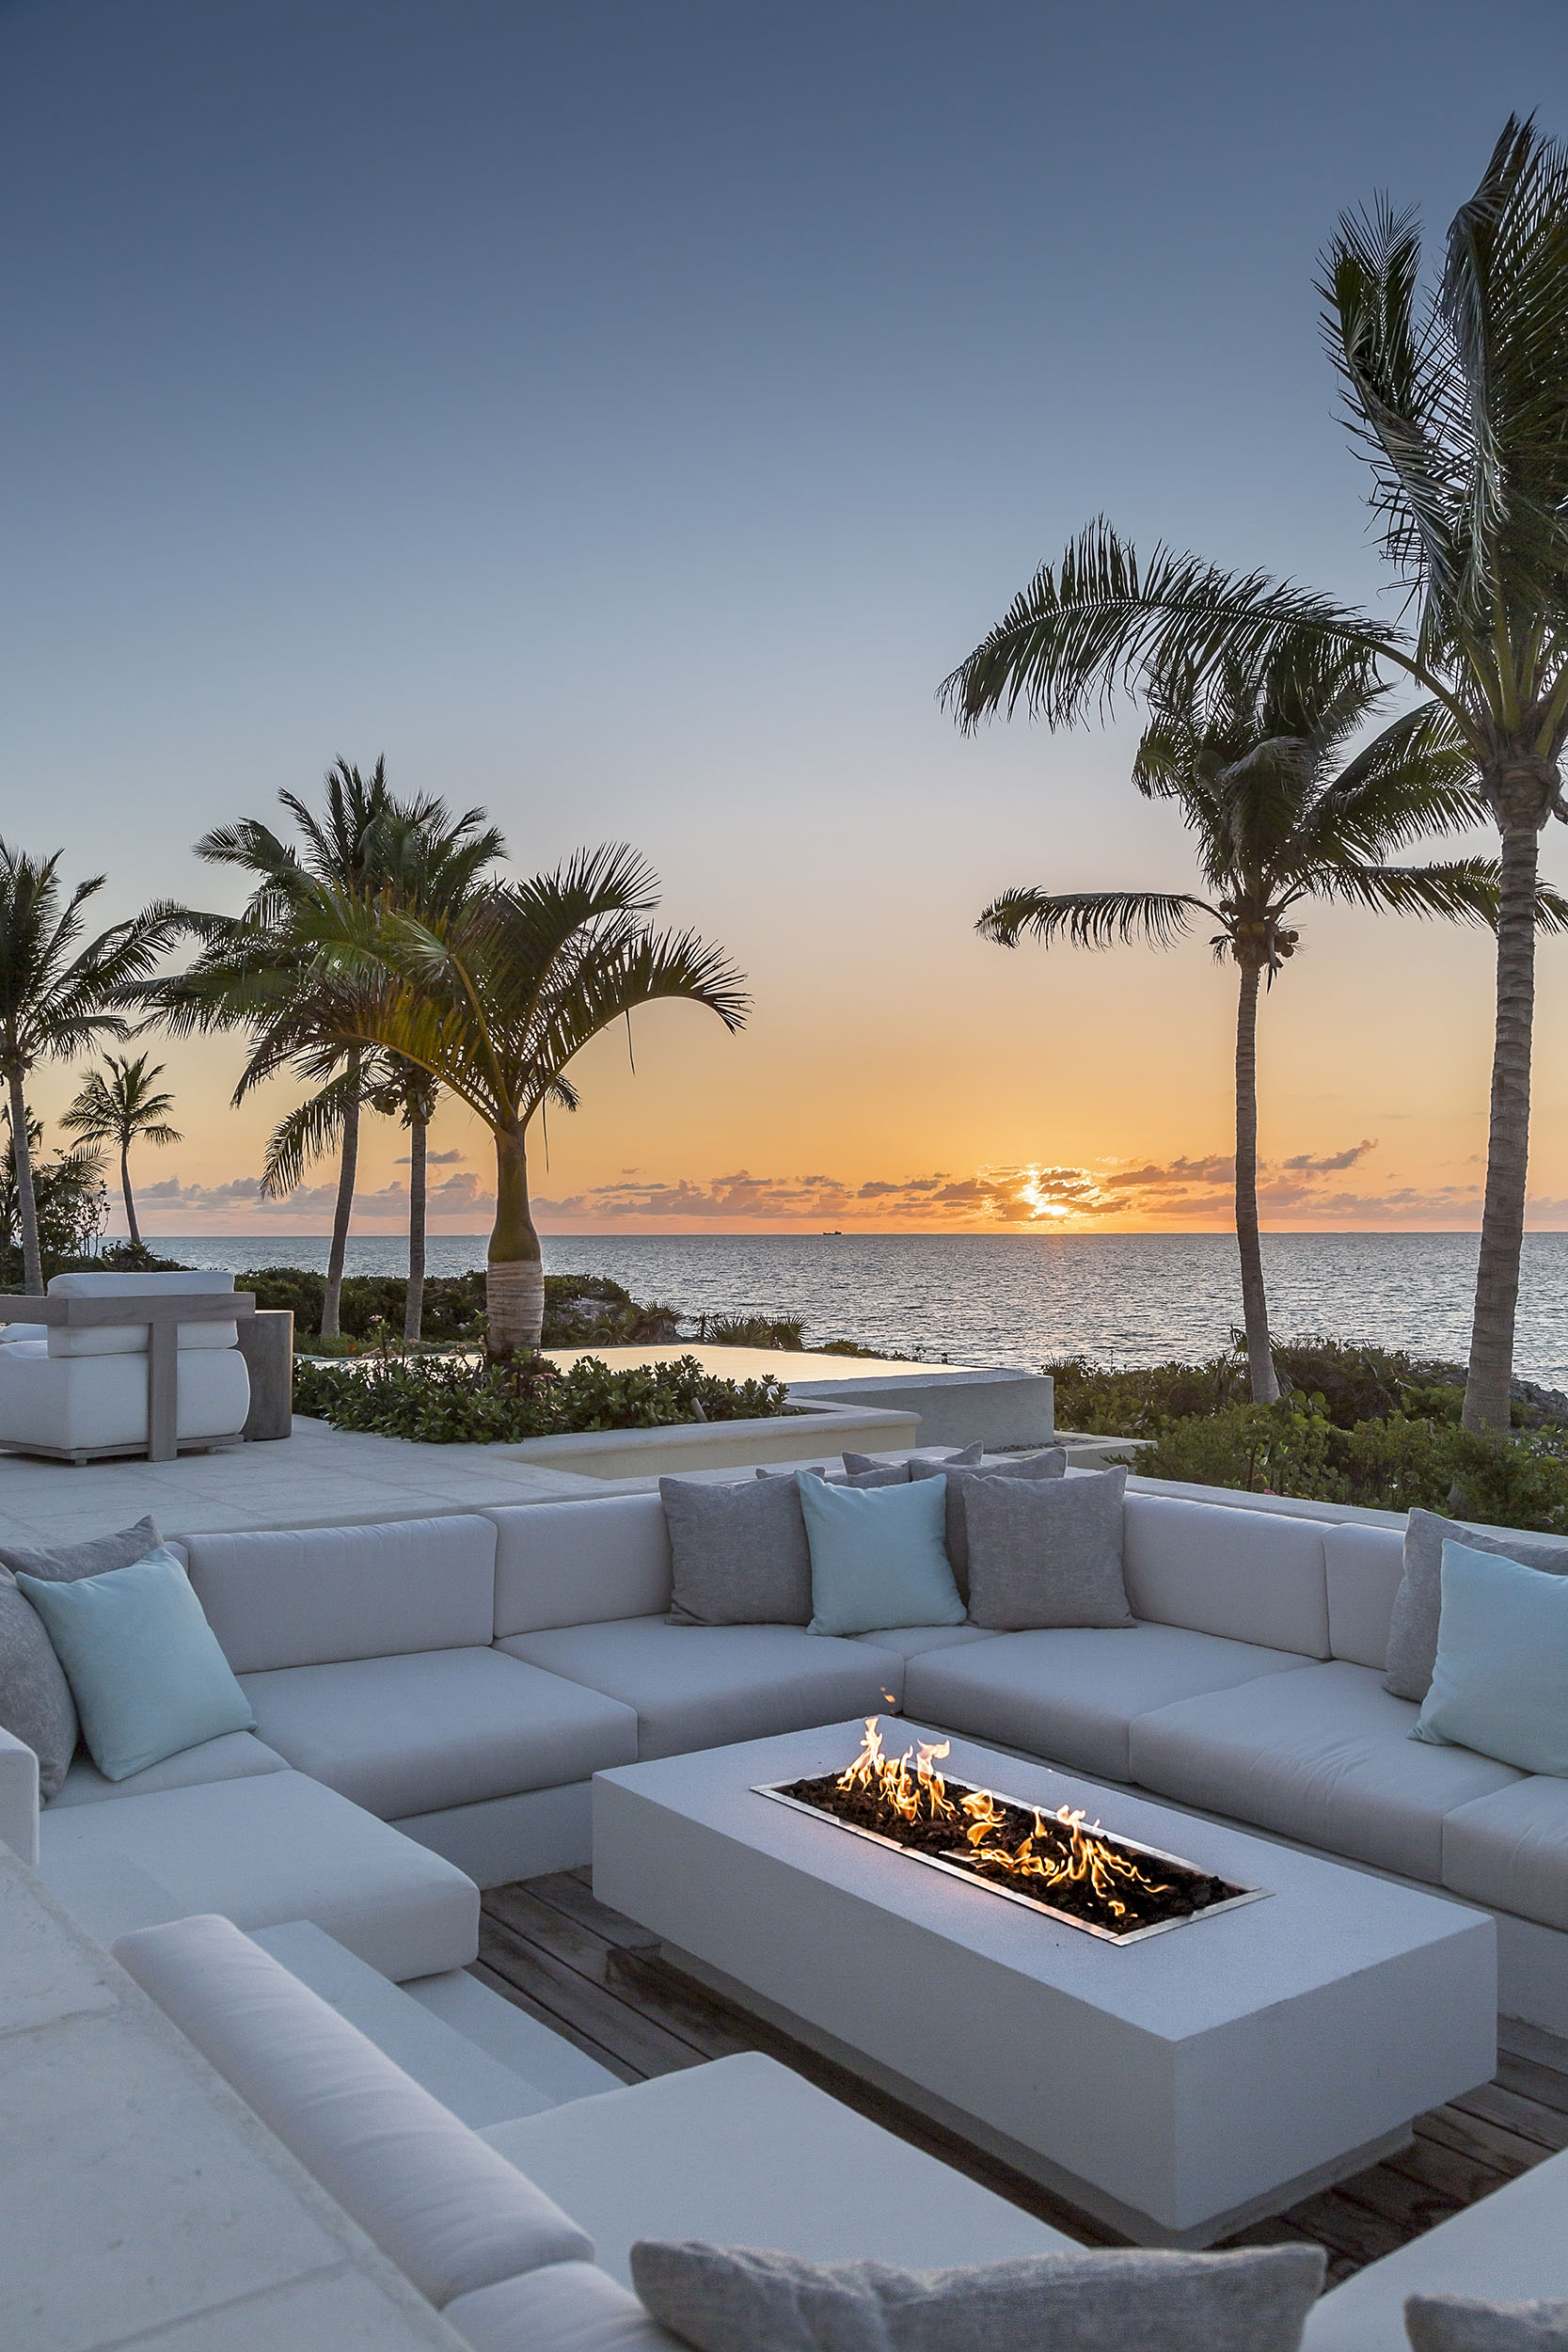 La Dolce Vita - evening view of the fire pit